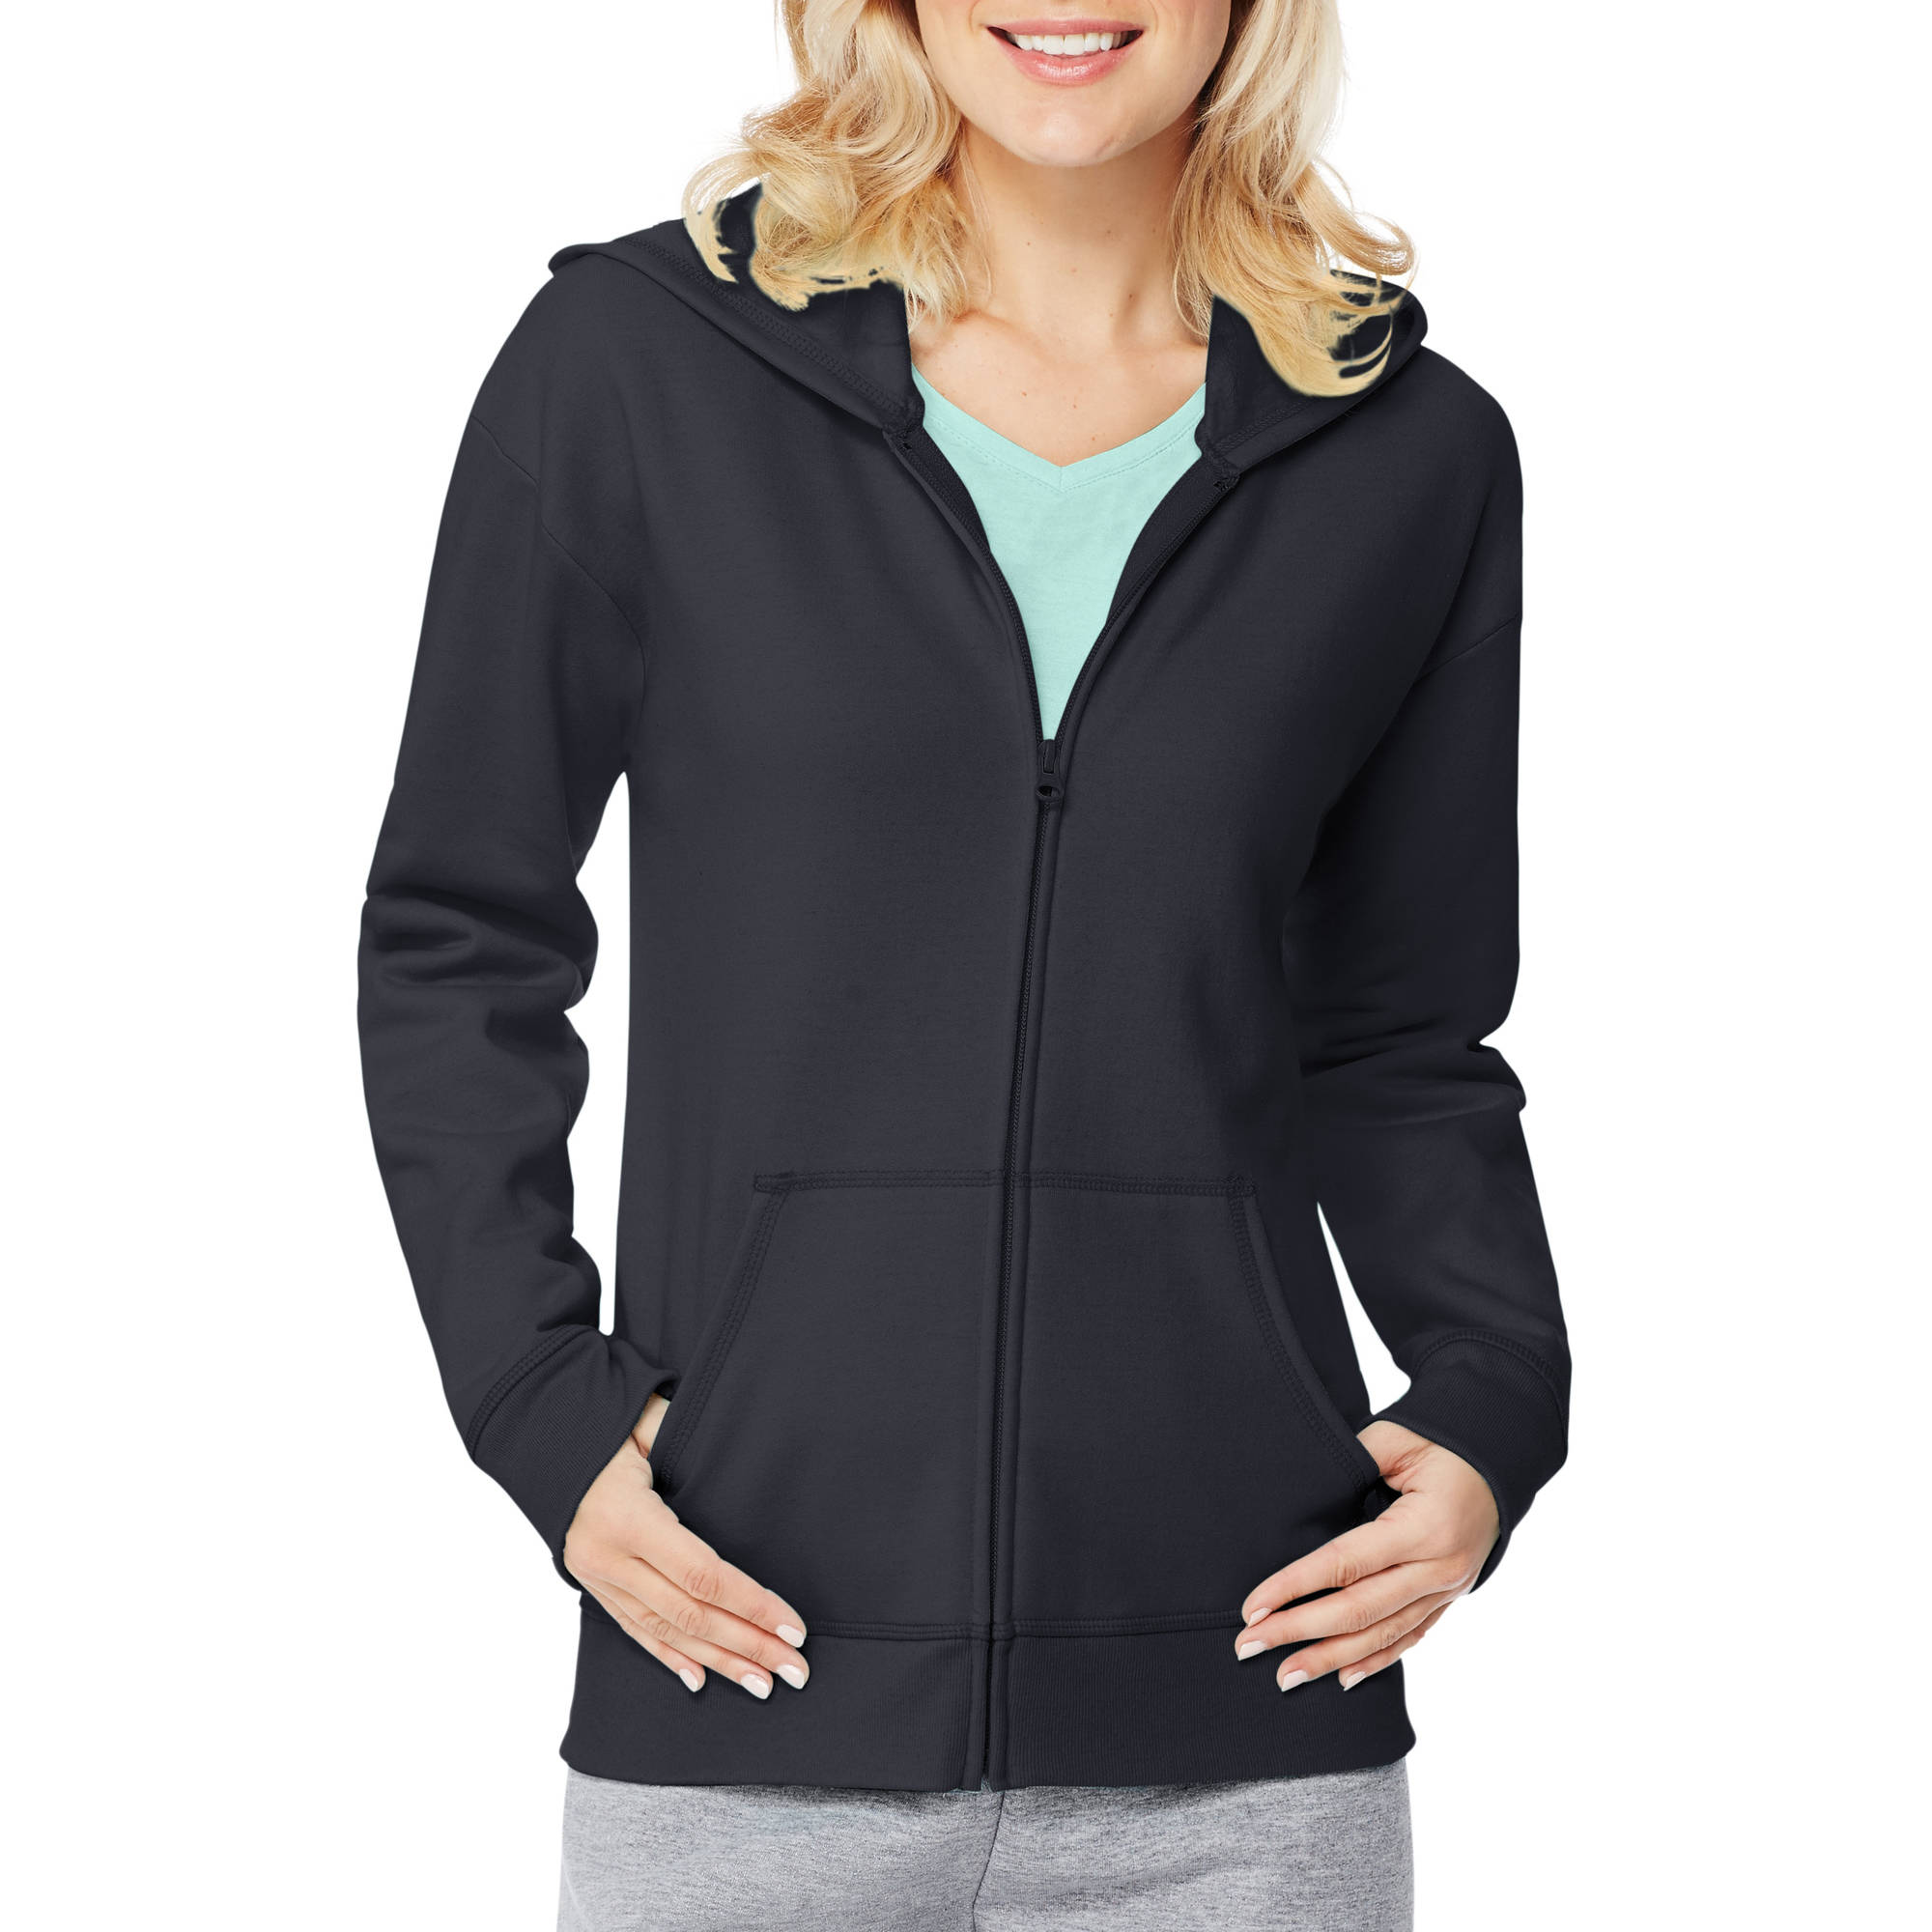 Hanes Women's Essential Fleece Full Zip Hoodie Jacket